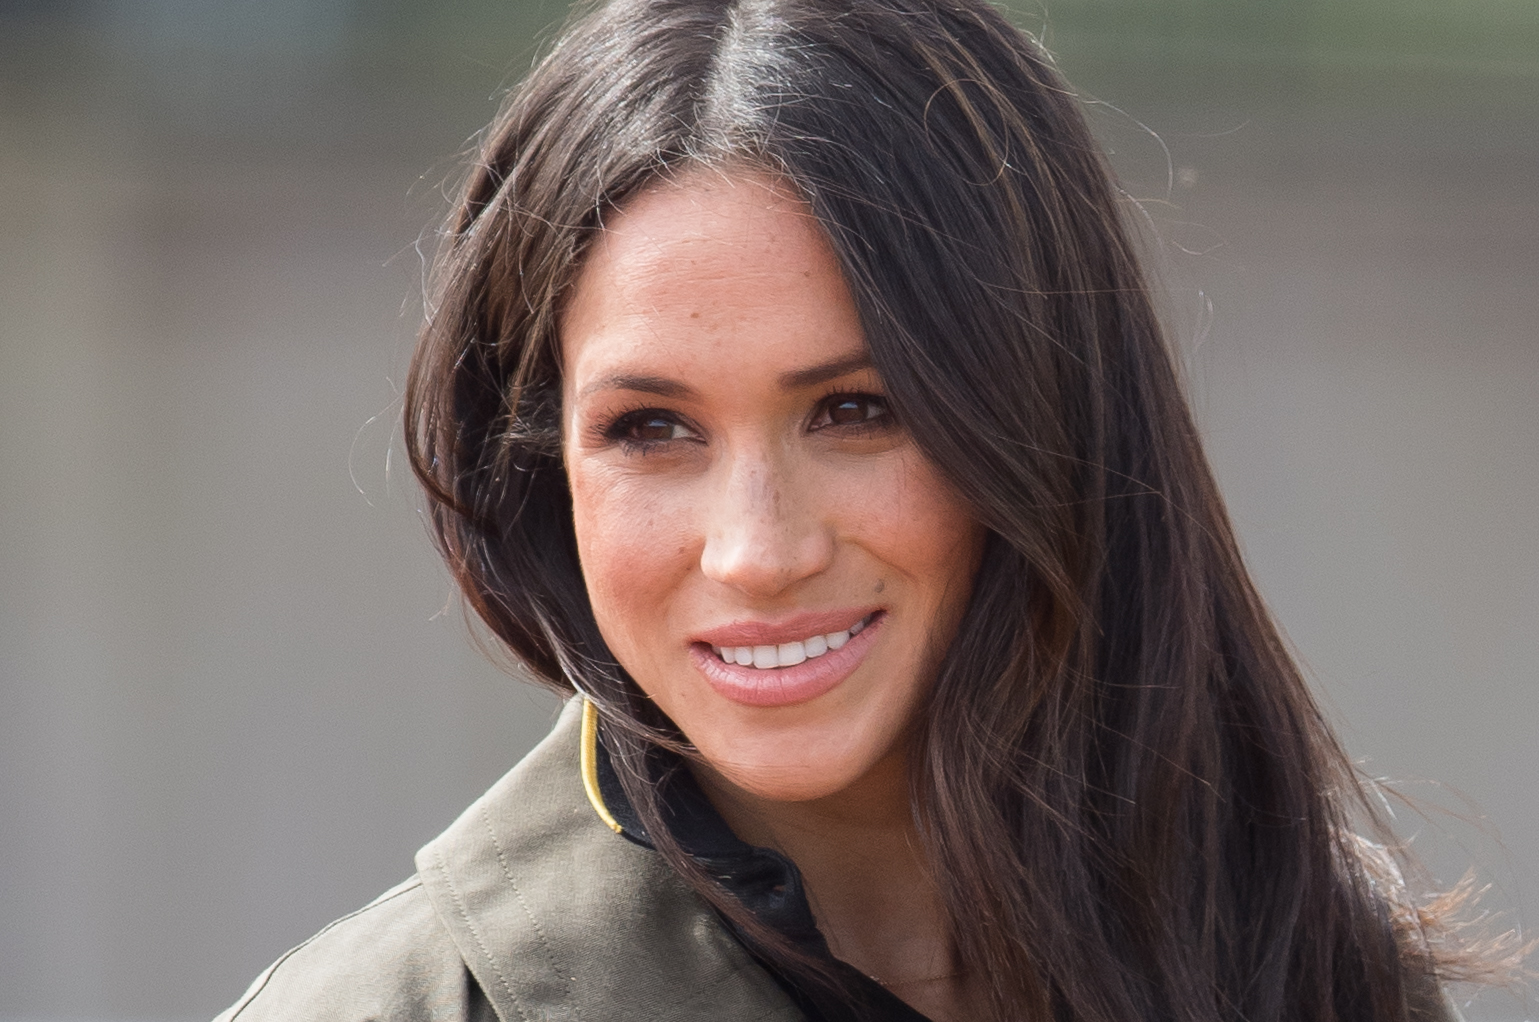 Why Meghan Markle Changed Her Name